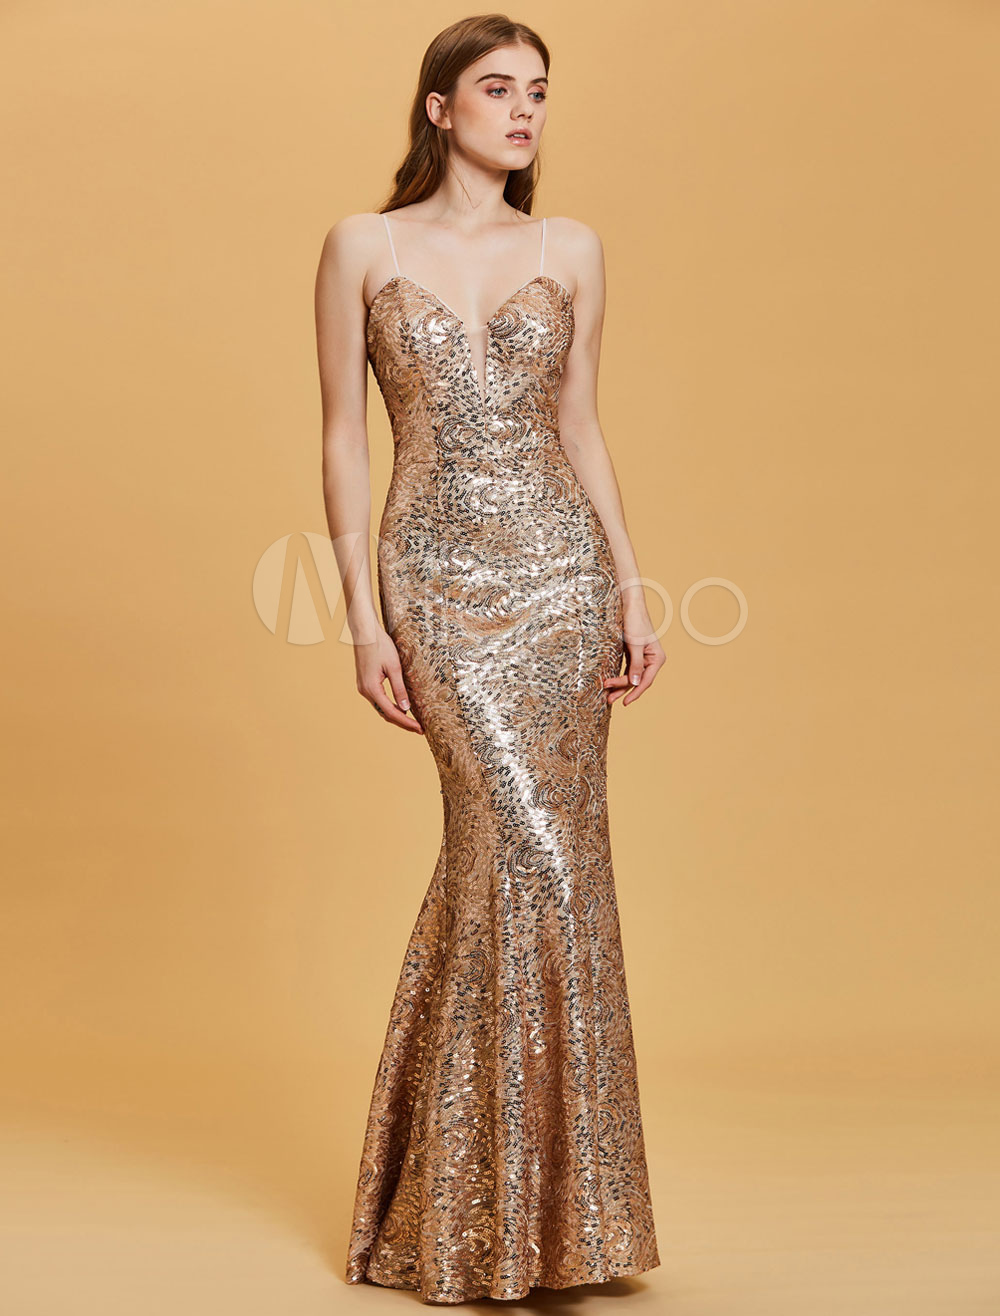 Sequin Evening Dresses Light Gold Mermaid Prom Dress Sexy Straps Floor Length Formal Gowns